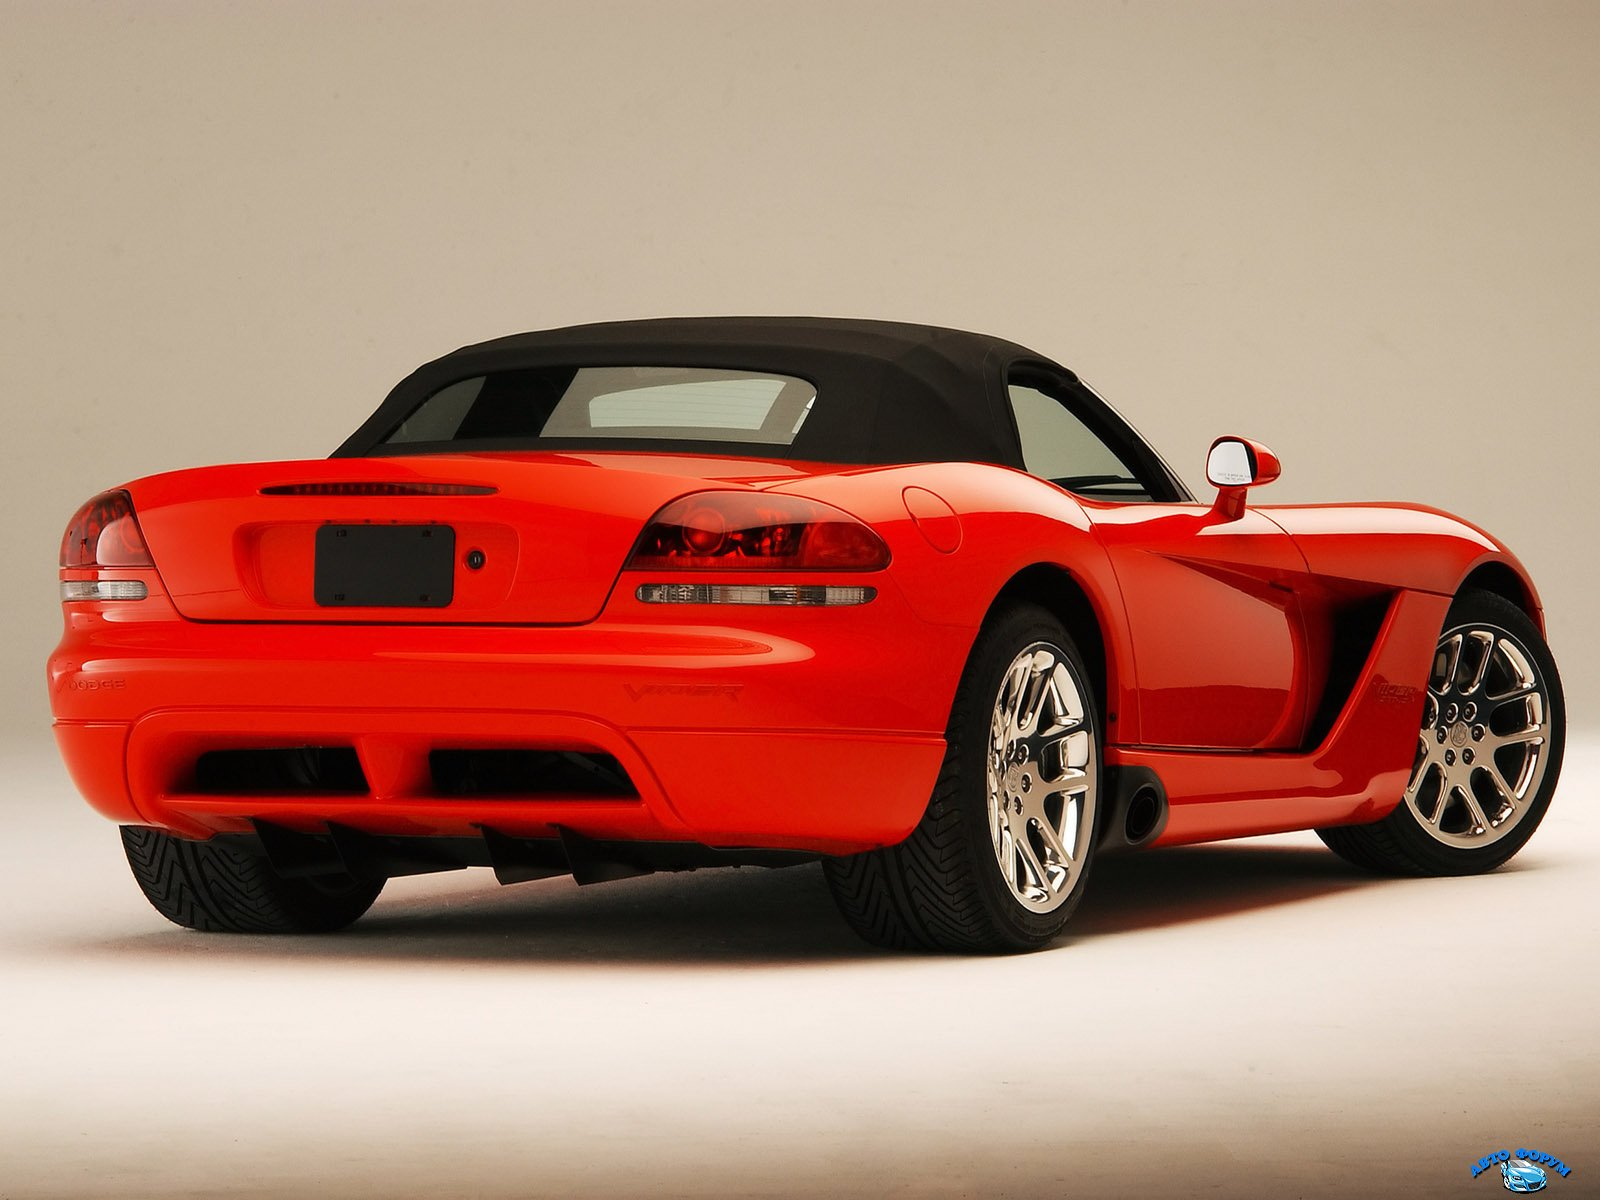 2003-dodge-viper-srt-10-rear.jpg